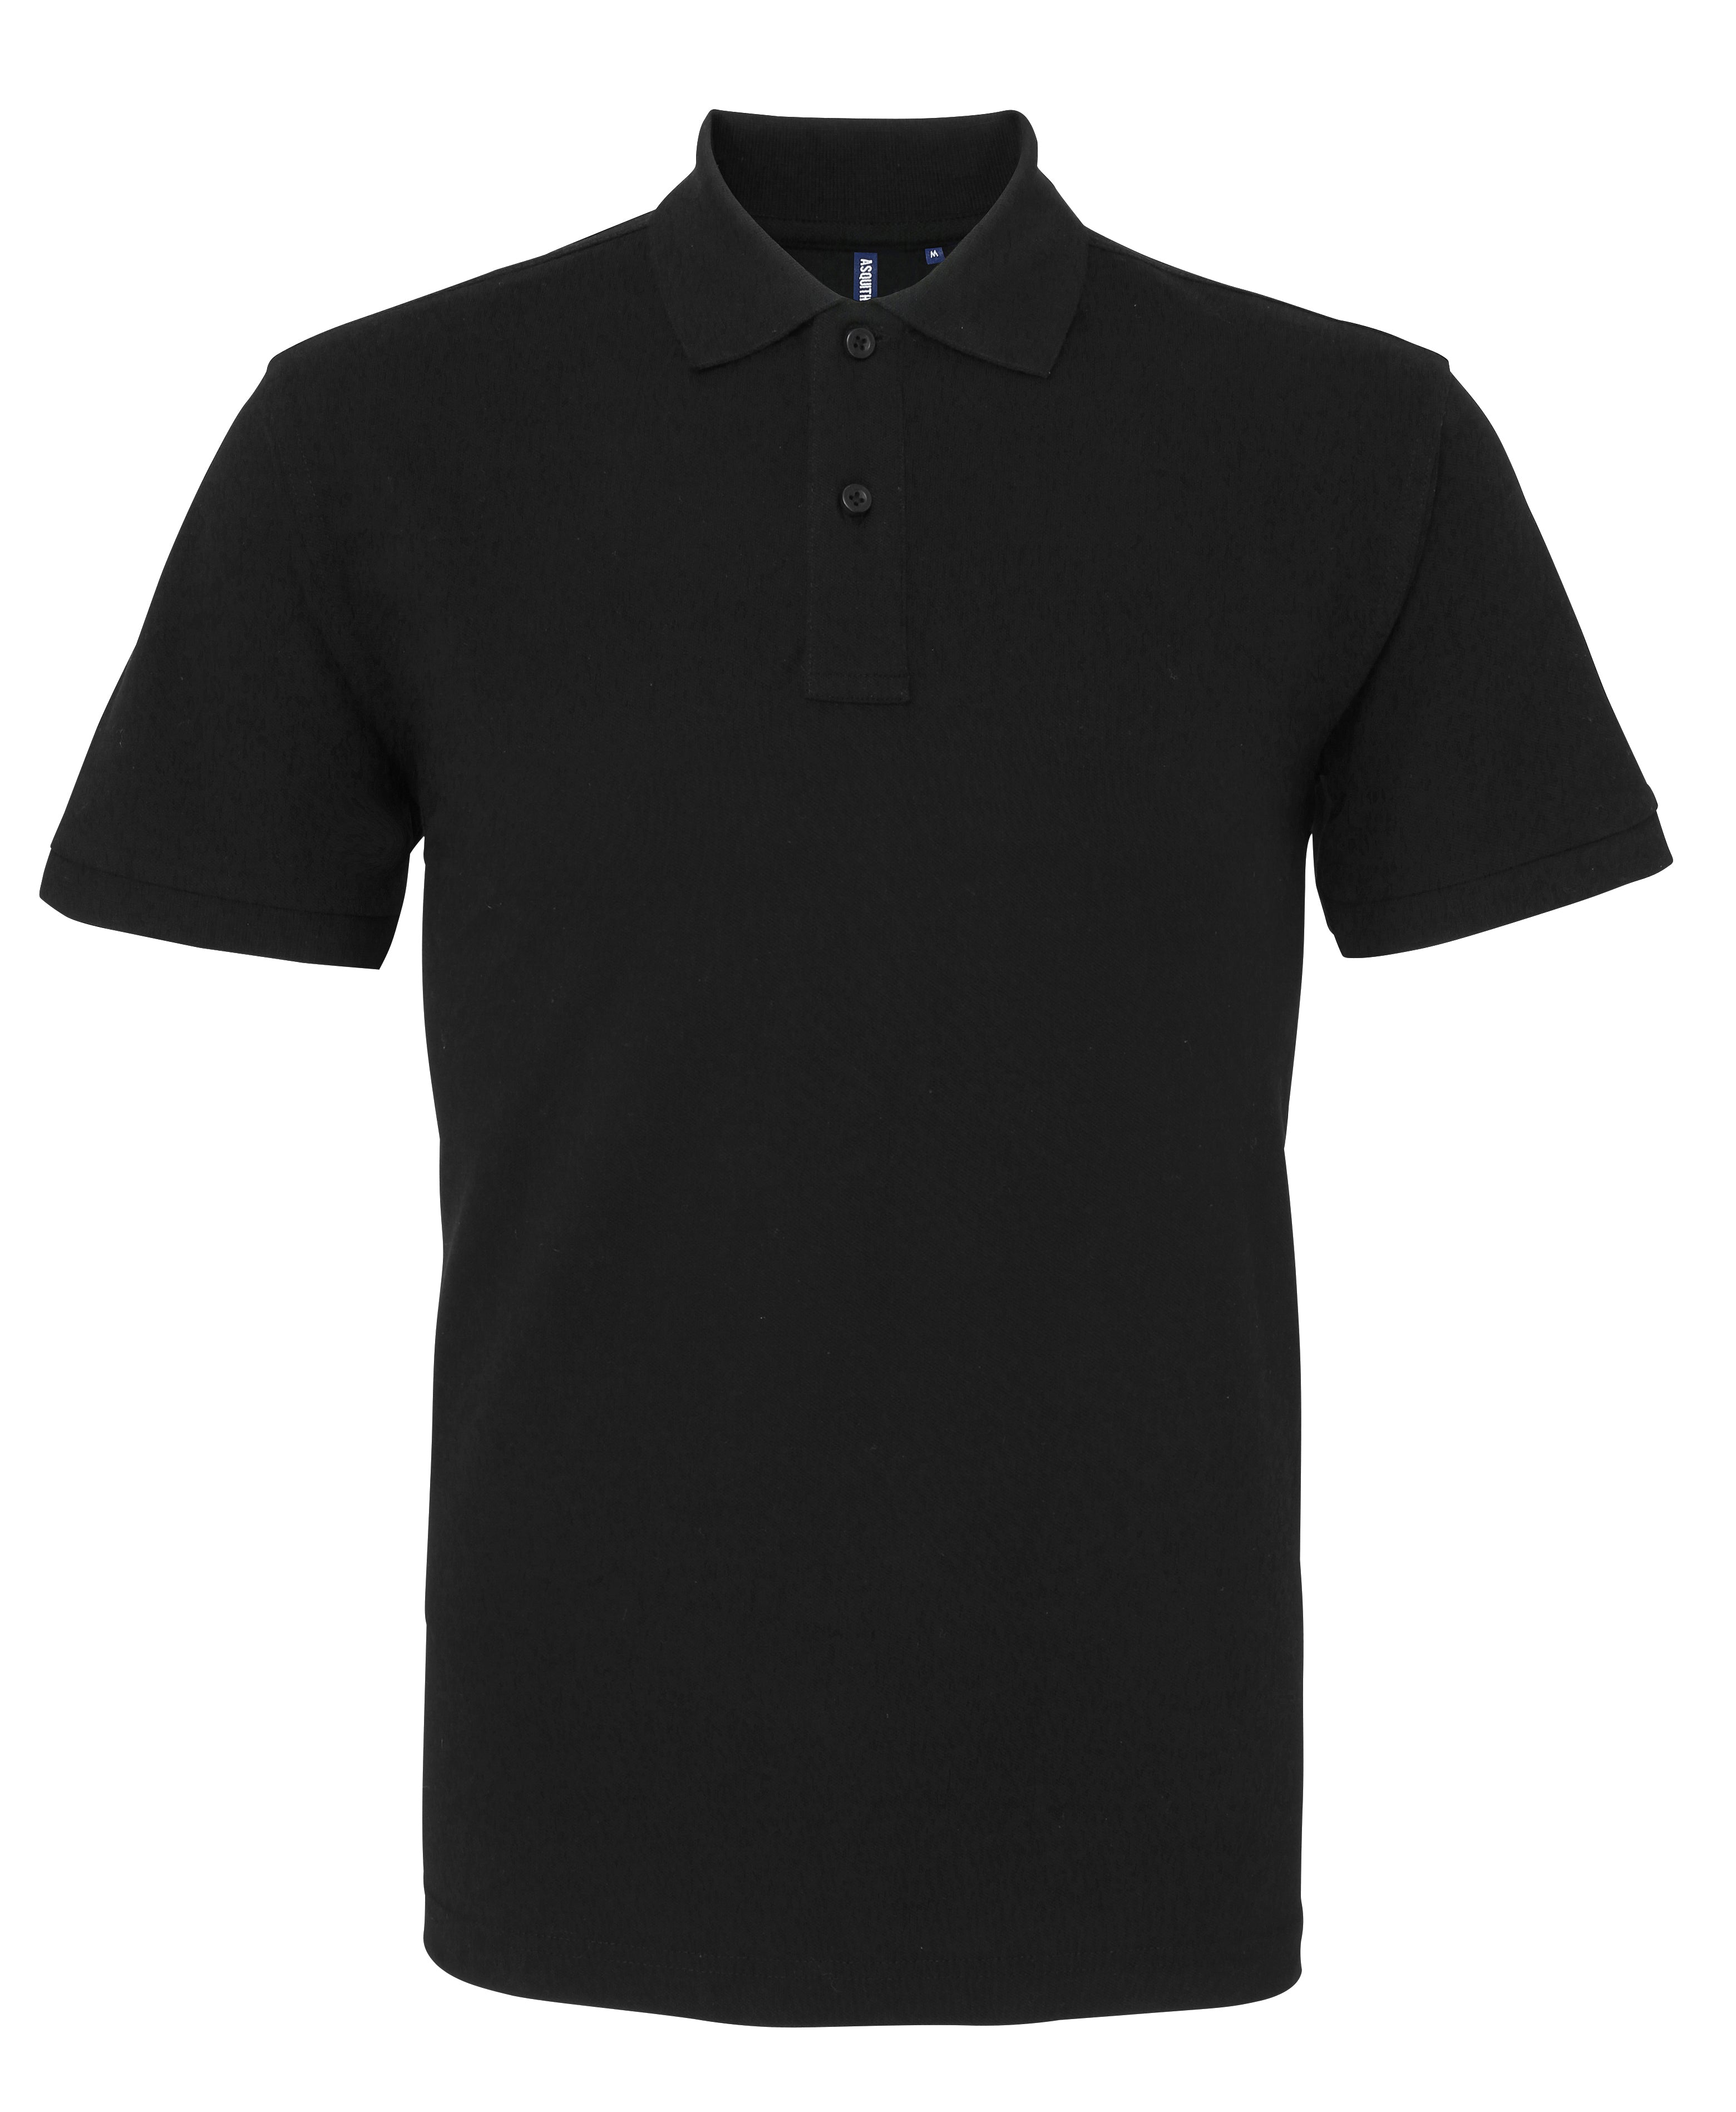 Men's Polo With Embroidered Pocket Logo - Illustrated Identity Ltd.